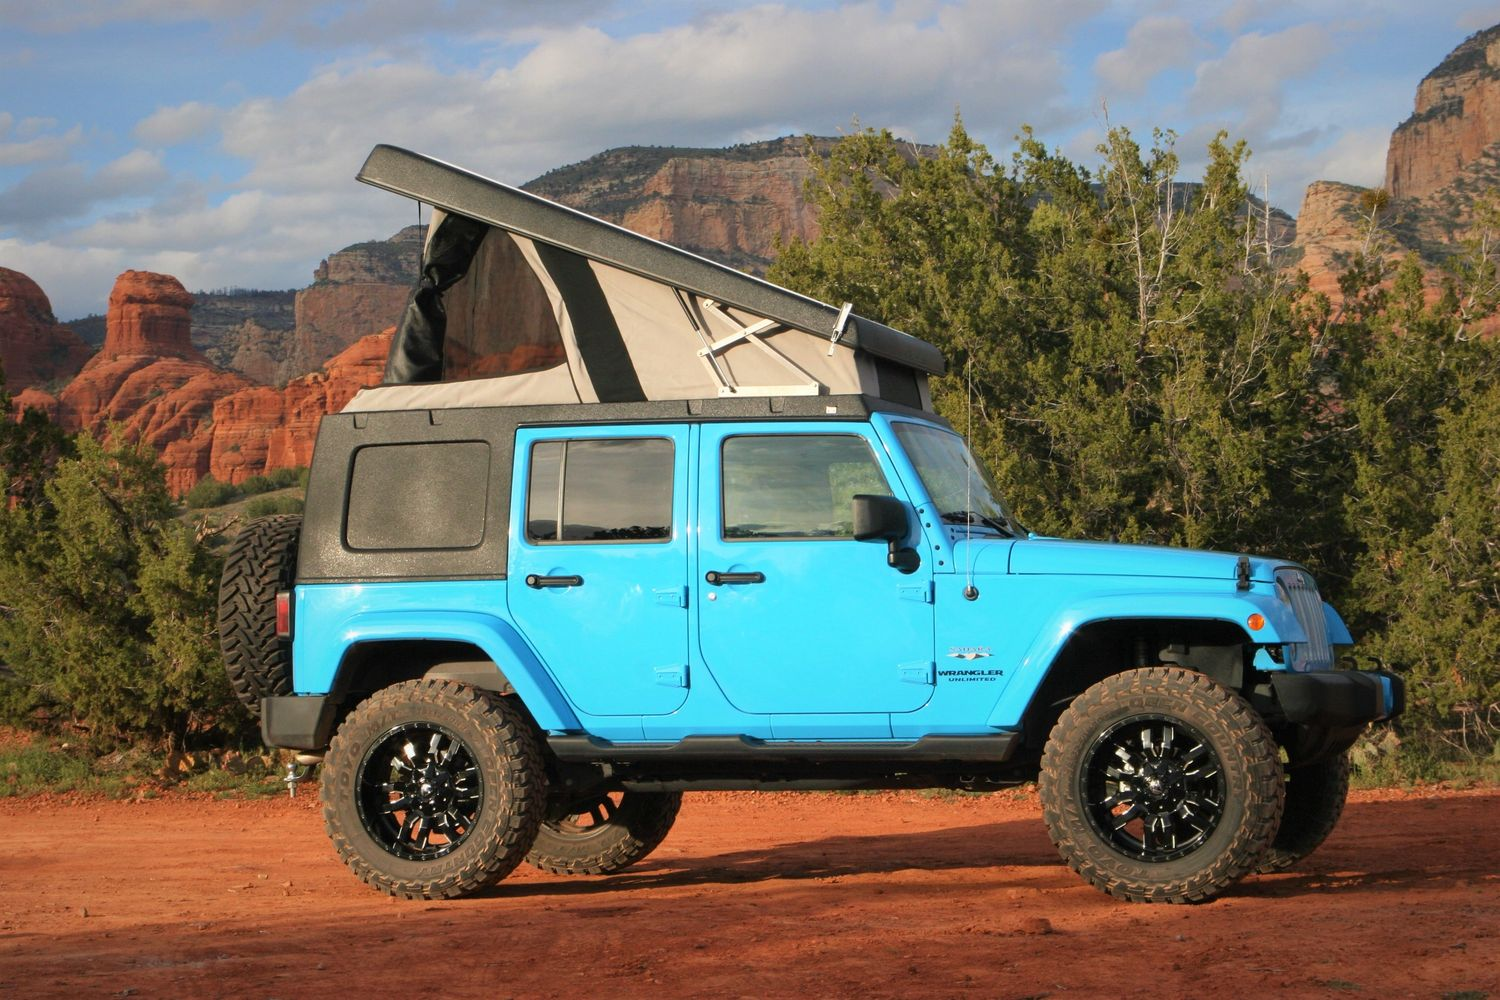 Fully outfitted camper Jeep rental in Moab, Utah